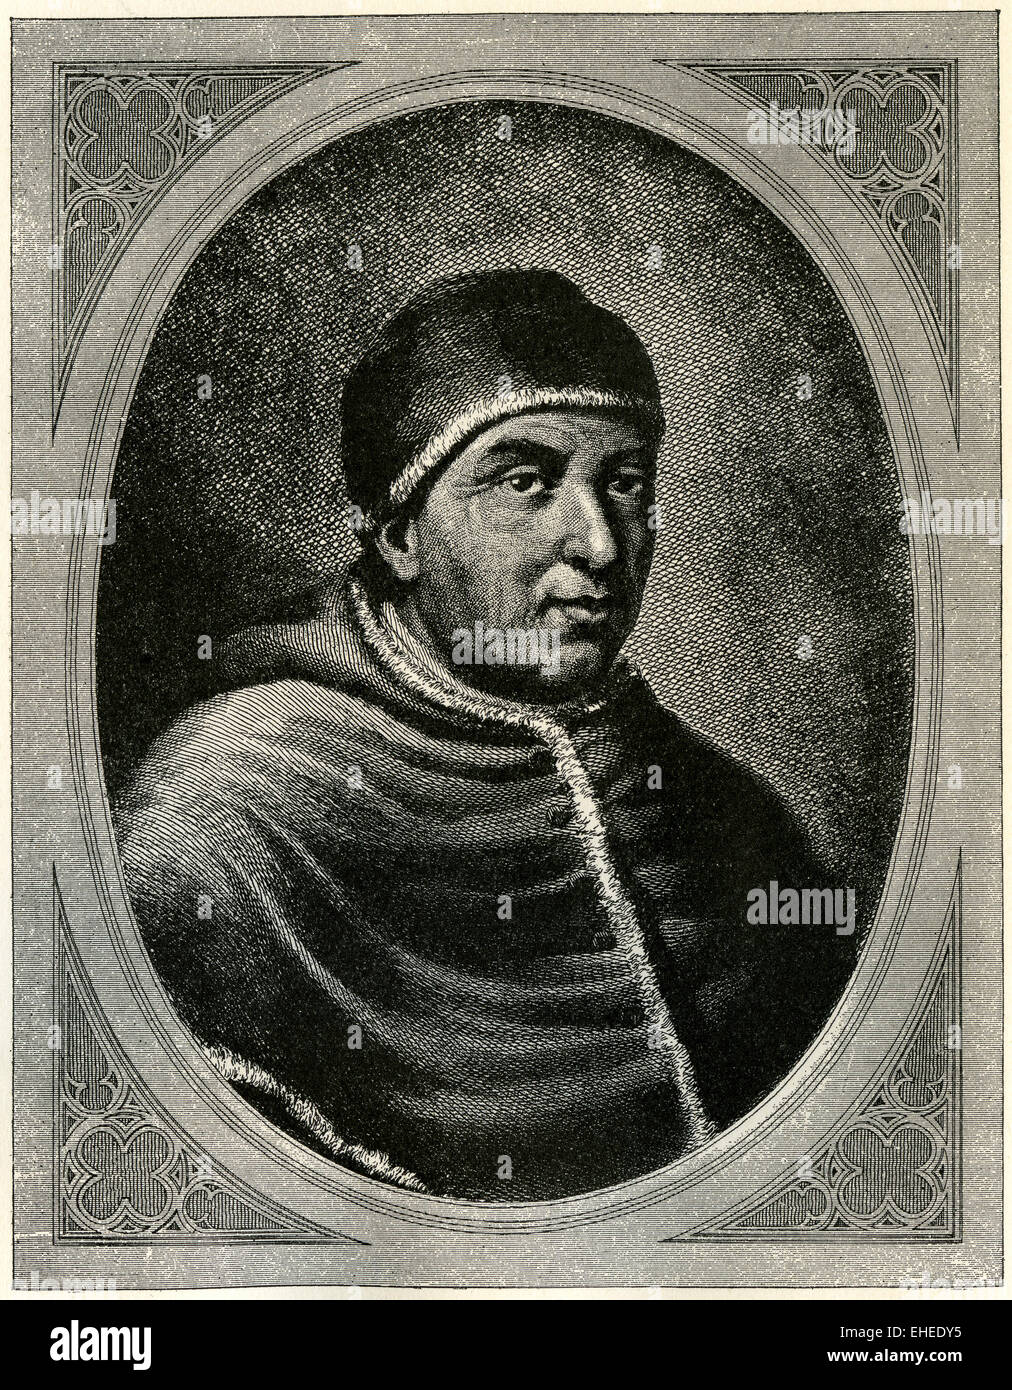 Pope Leo X, who reigned at the time of Martin Luther. - Stock Image